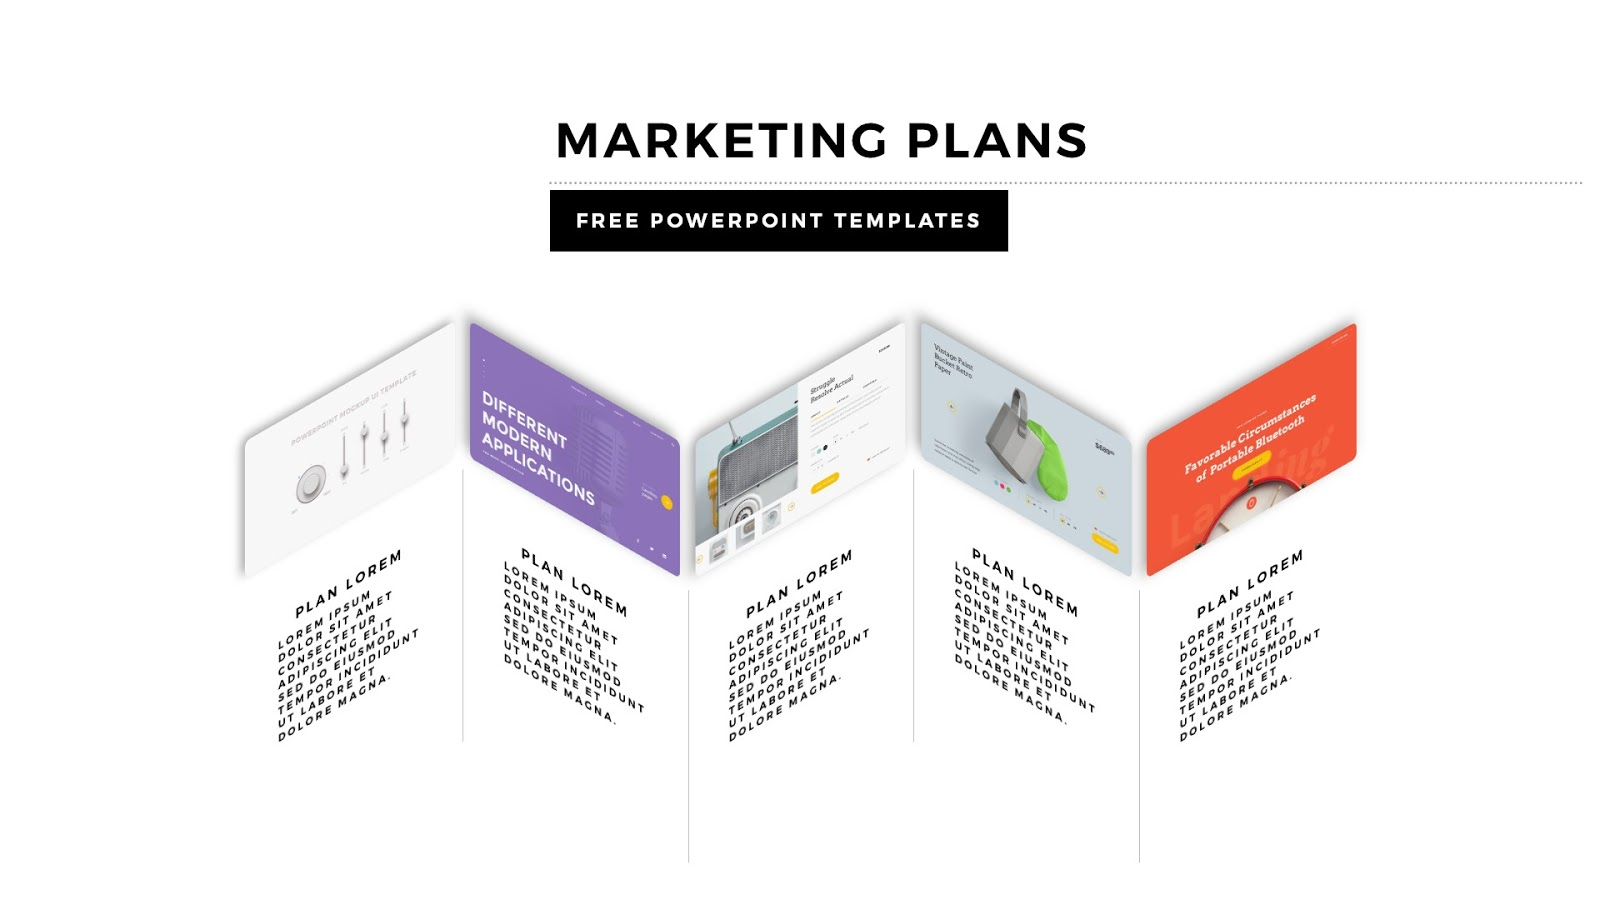 infographic marketing plan free powerpoint template, Powerpoint templates